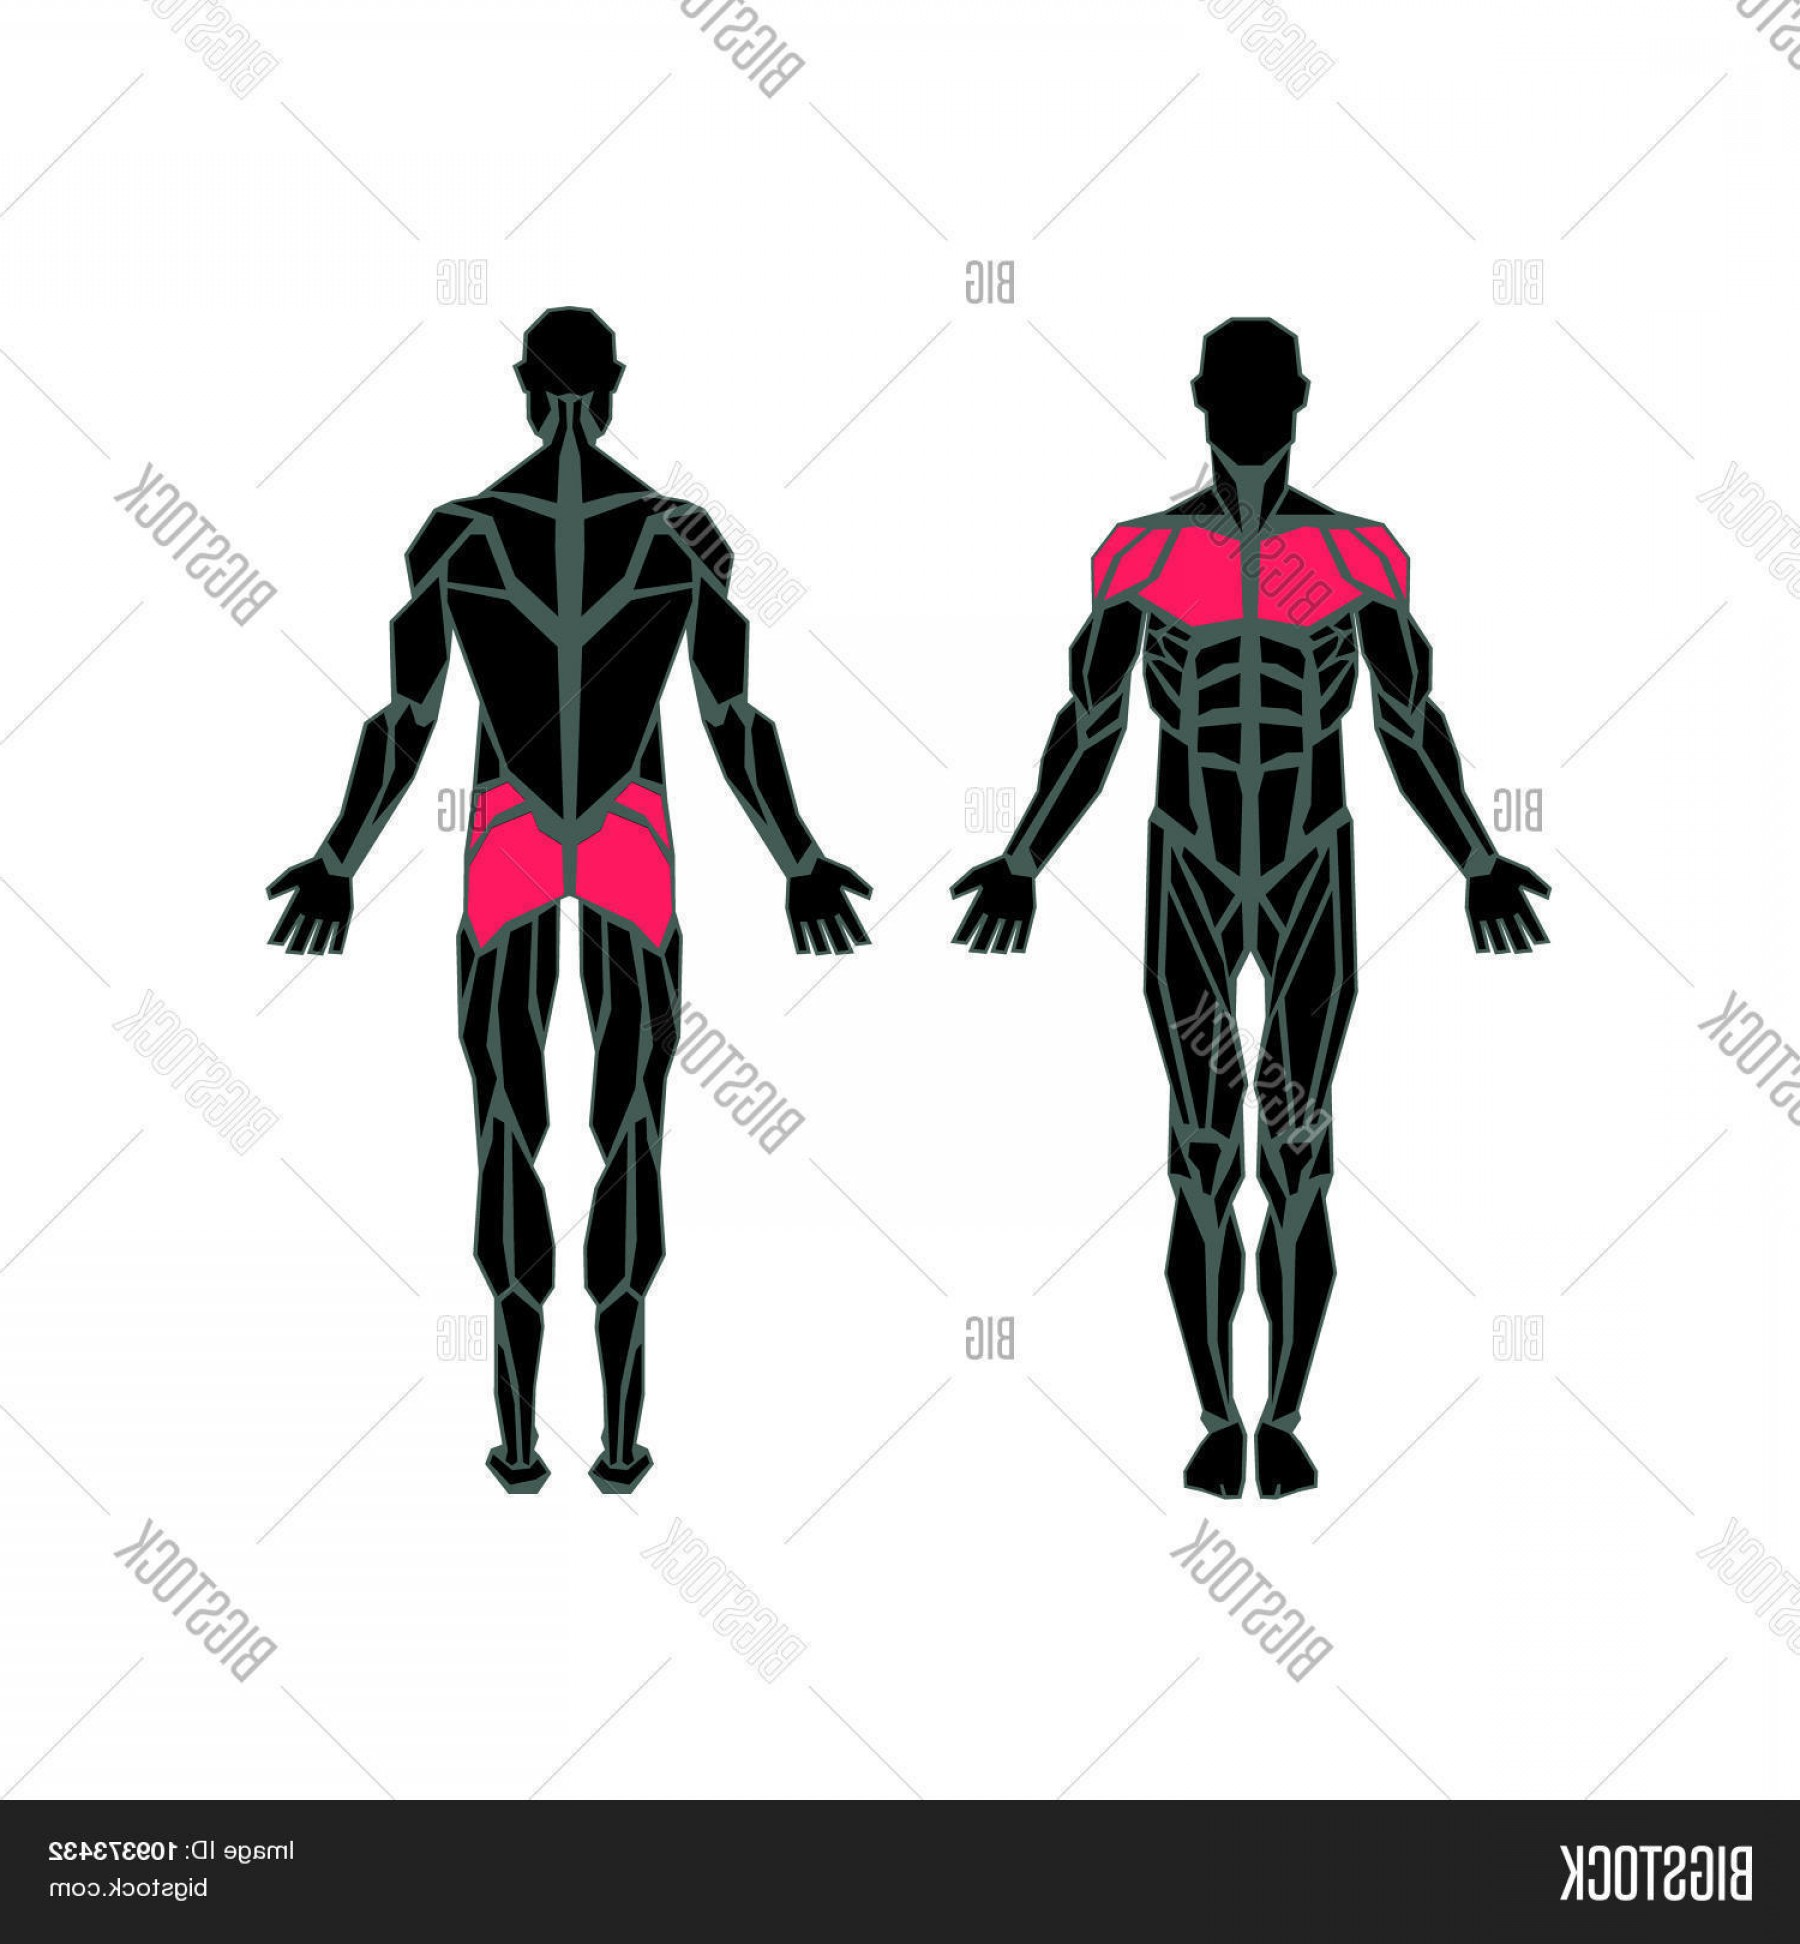 Male Silhouette Vector Art: Stock Vector Polygonal Anatomy Of Male Muscular Systemc Exercise And Muscle Guide Human Muscular Vector Artc Fro